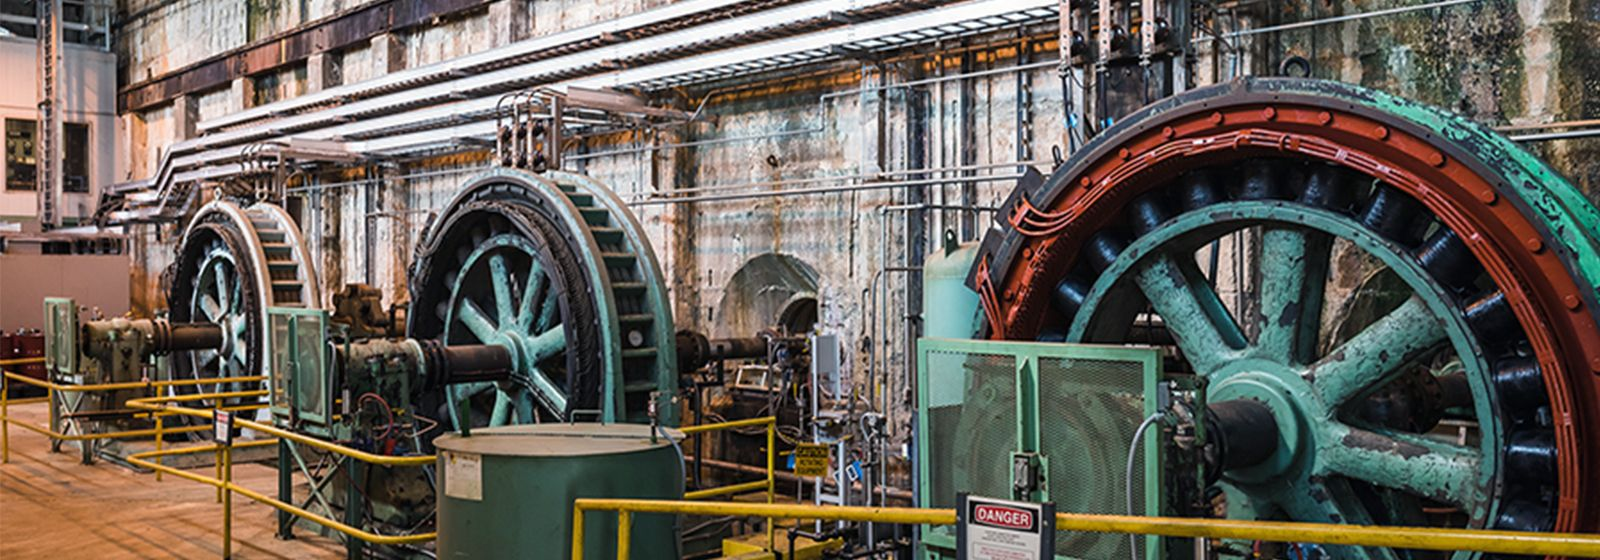 A powerhouse at 110 years old